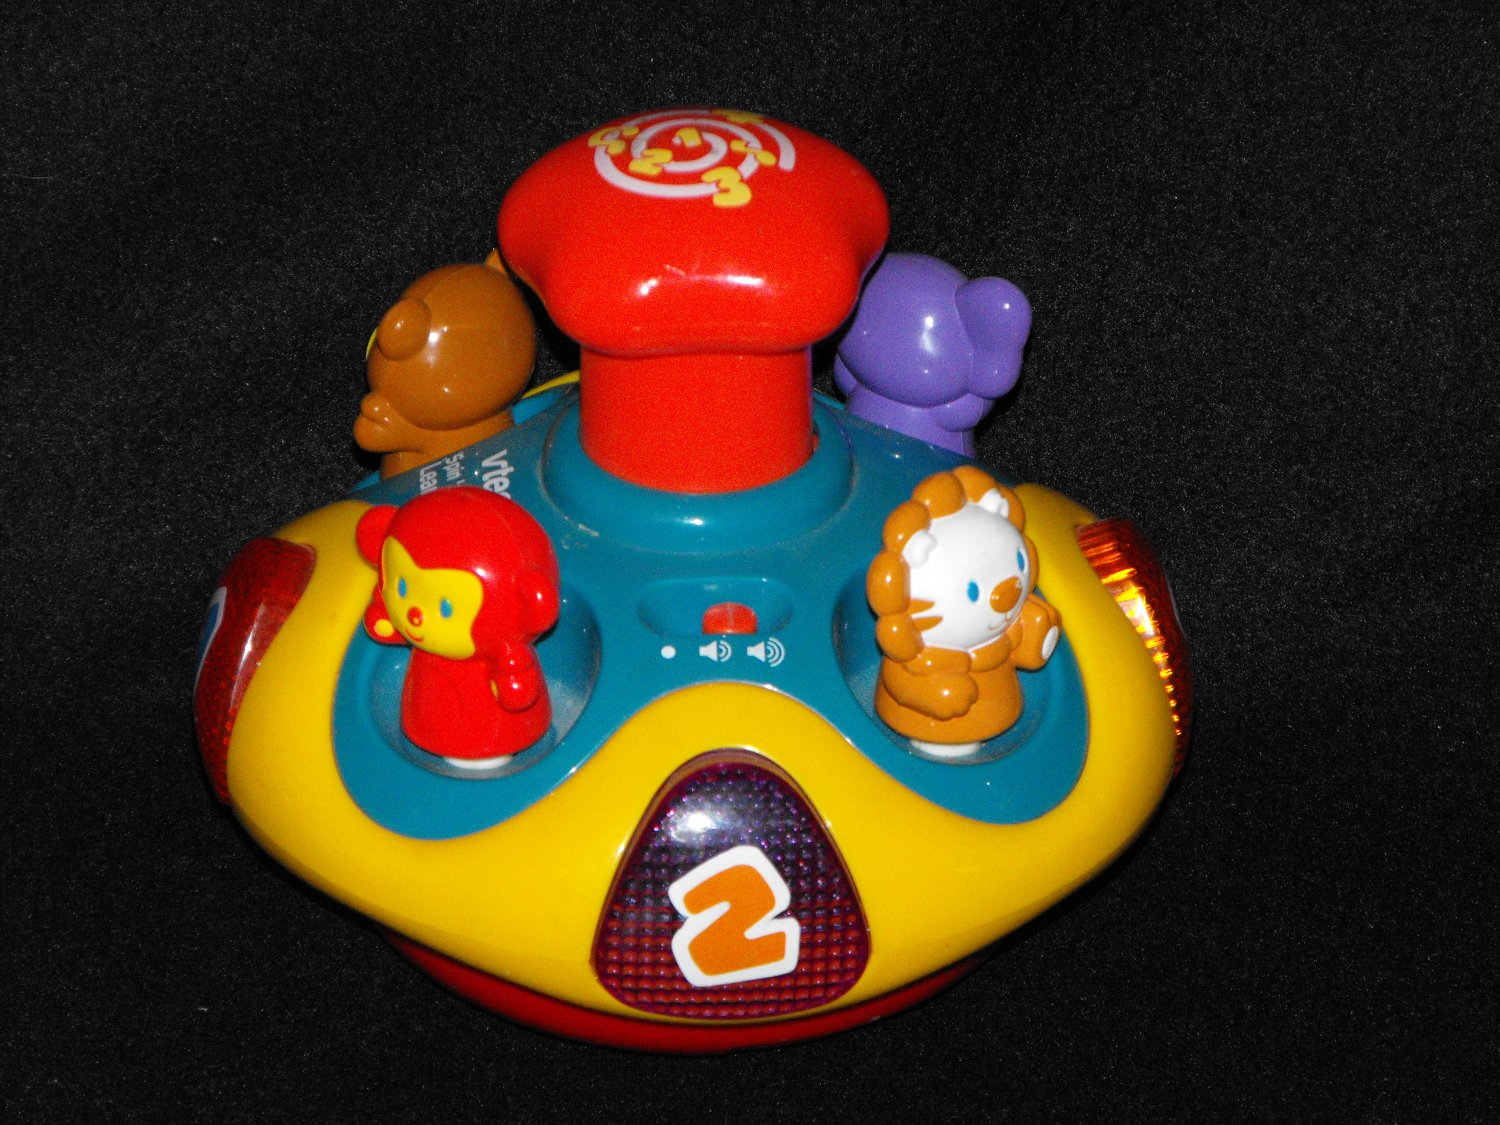 Vtech Spin n' Learn Top Colors, Shapes, Music